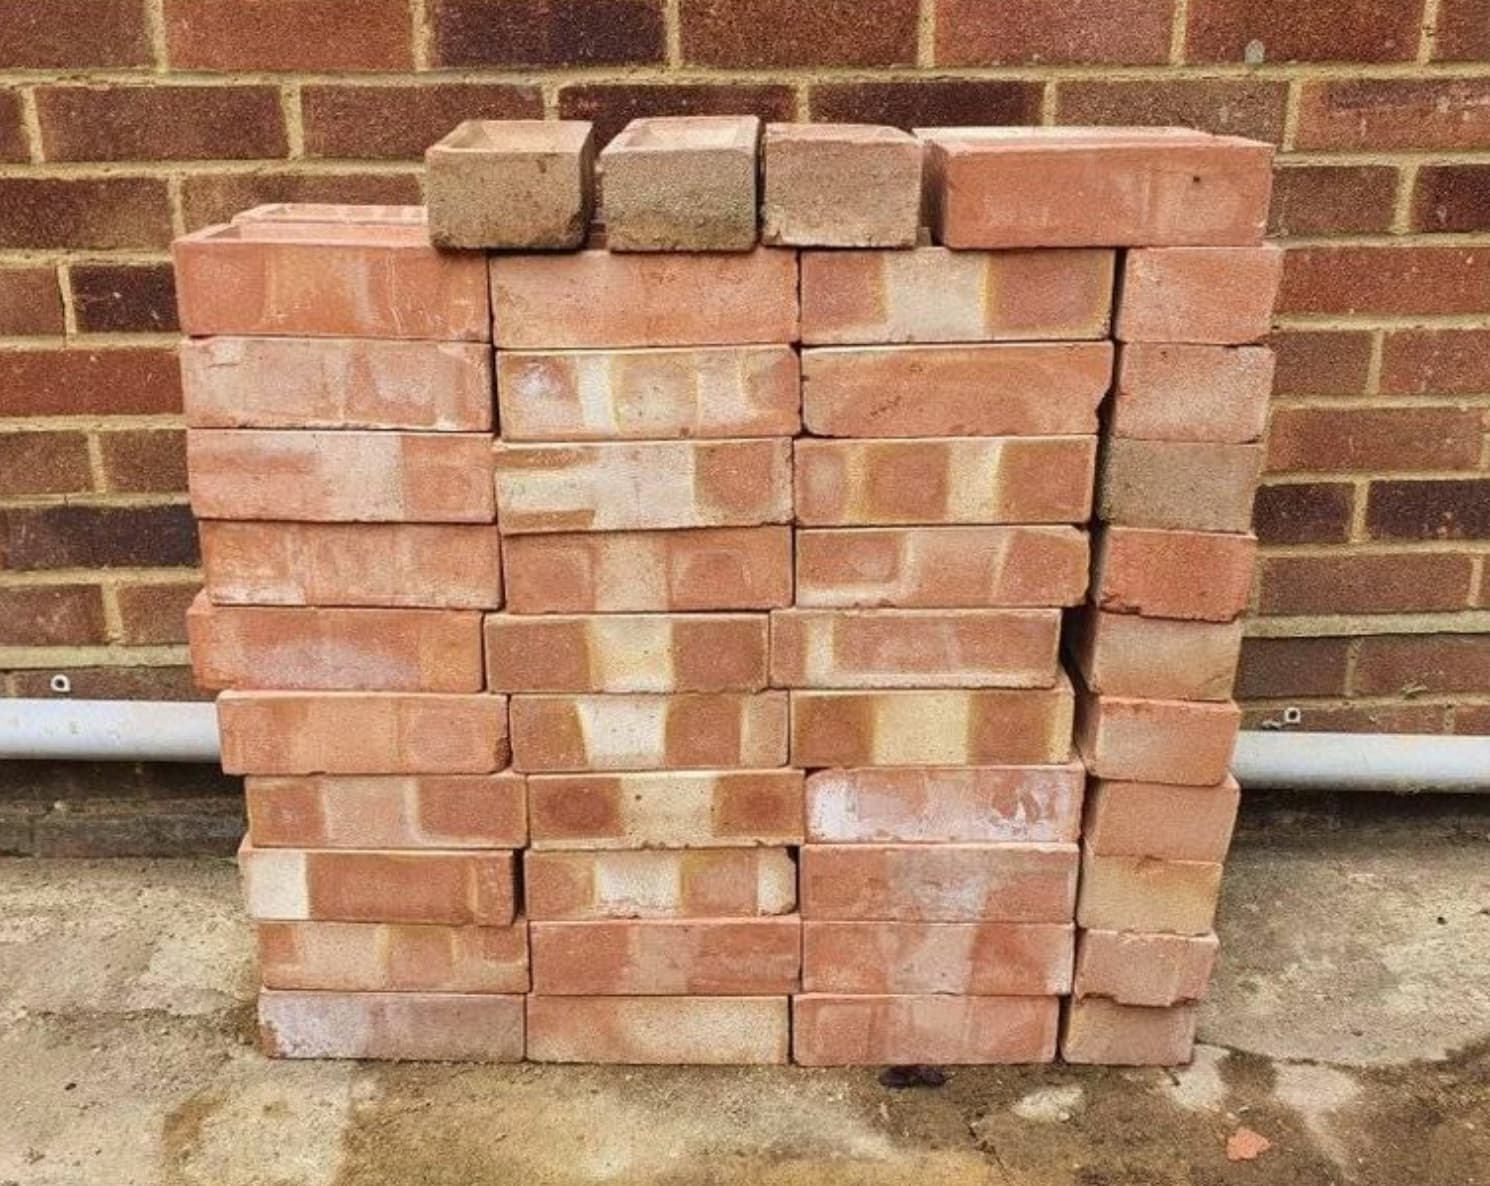 bricks in a neat stacked pile